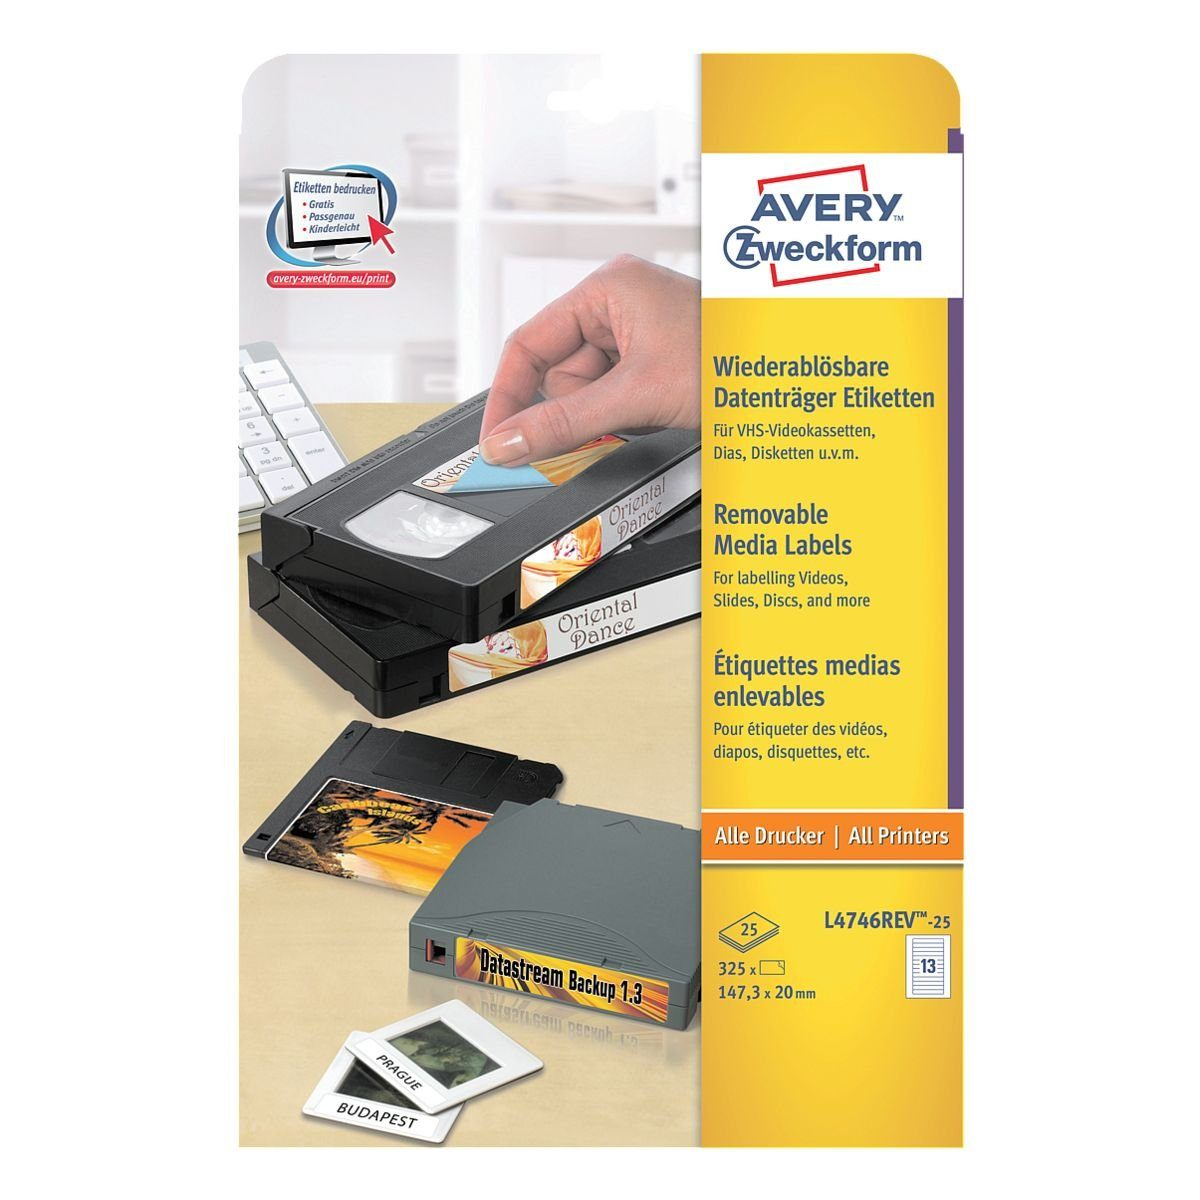 Avery Zweckform 325er-Pack Video-Etiketten »L4746REV-25«